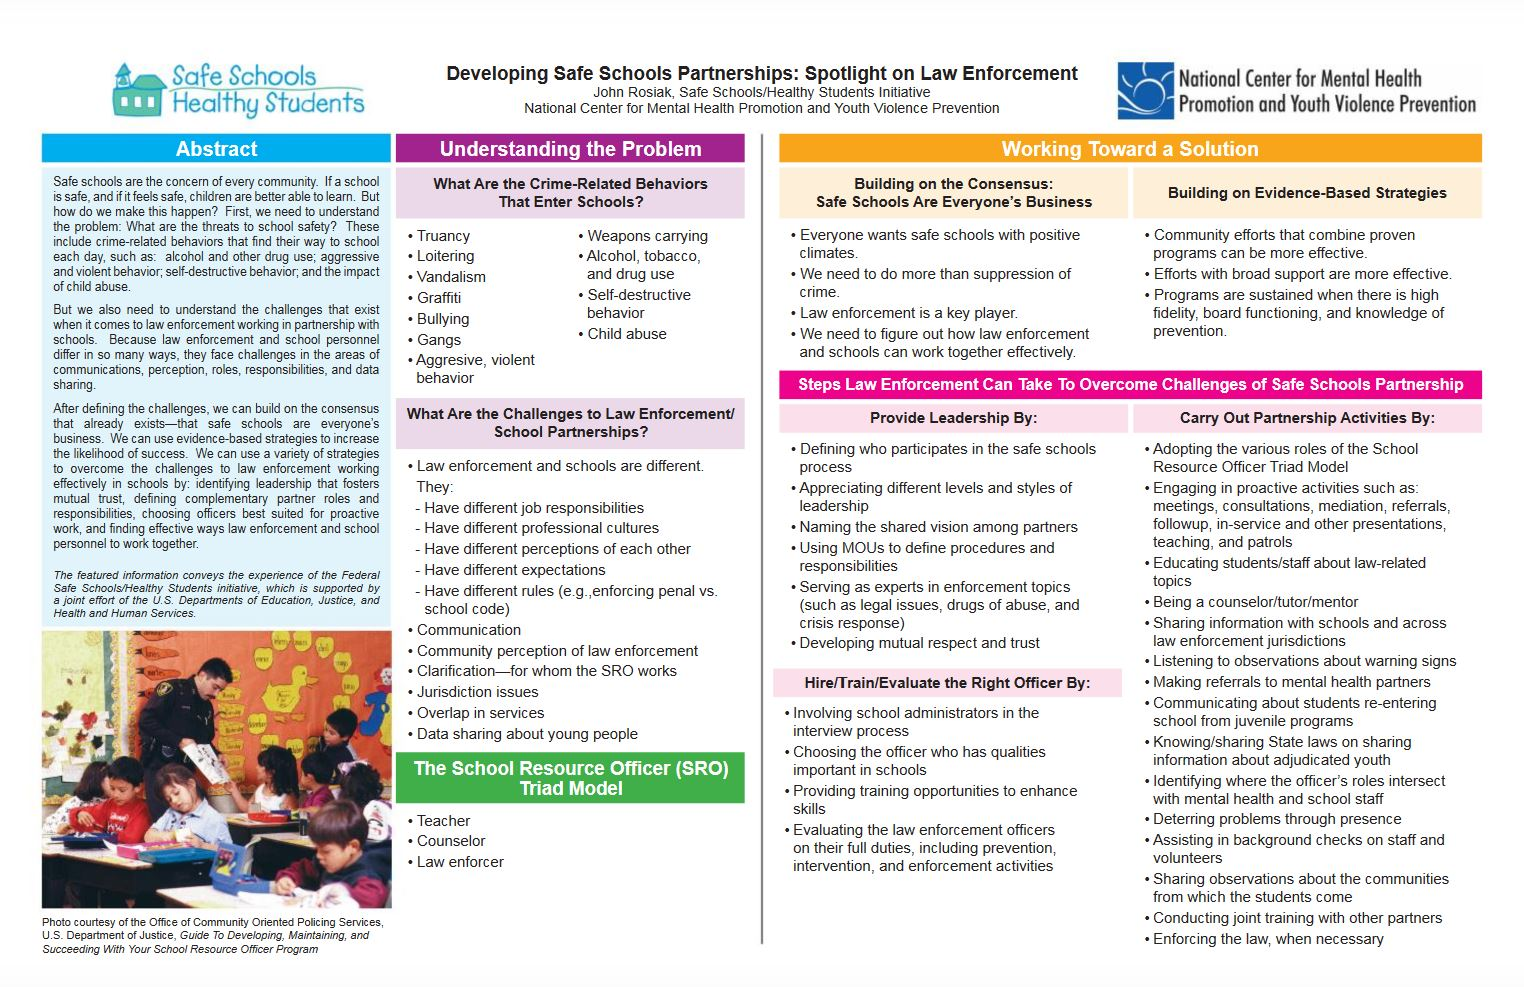 Snapshot publication prepared for the Safe Schools/Healthy Students Initiative explains the roles of law enforcement partners in a school safety collaborative.